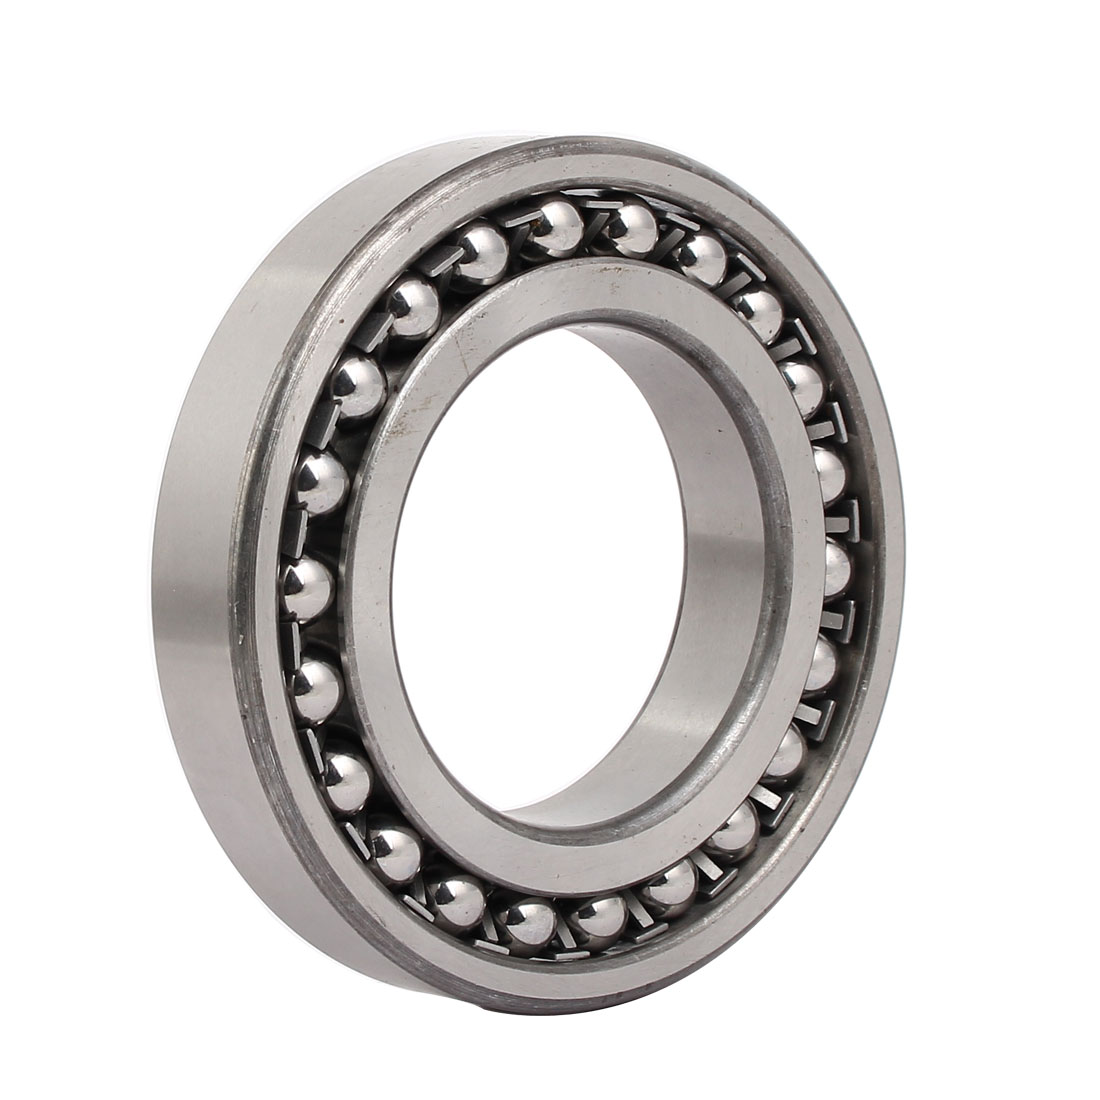 140mmx80mmx26mm 1216 Double Row Self-Aligning Ball Bearing Silver Tone